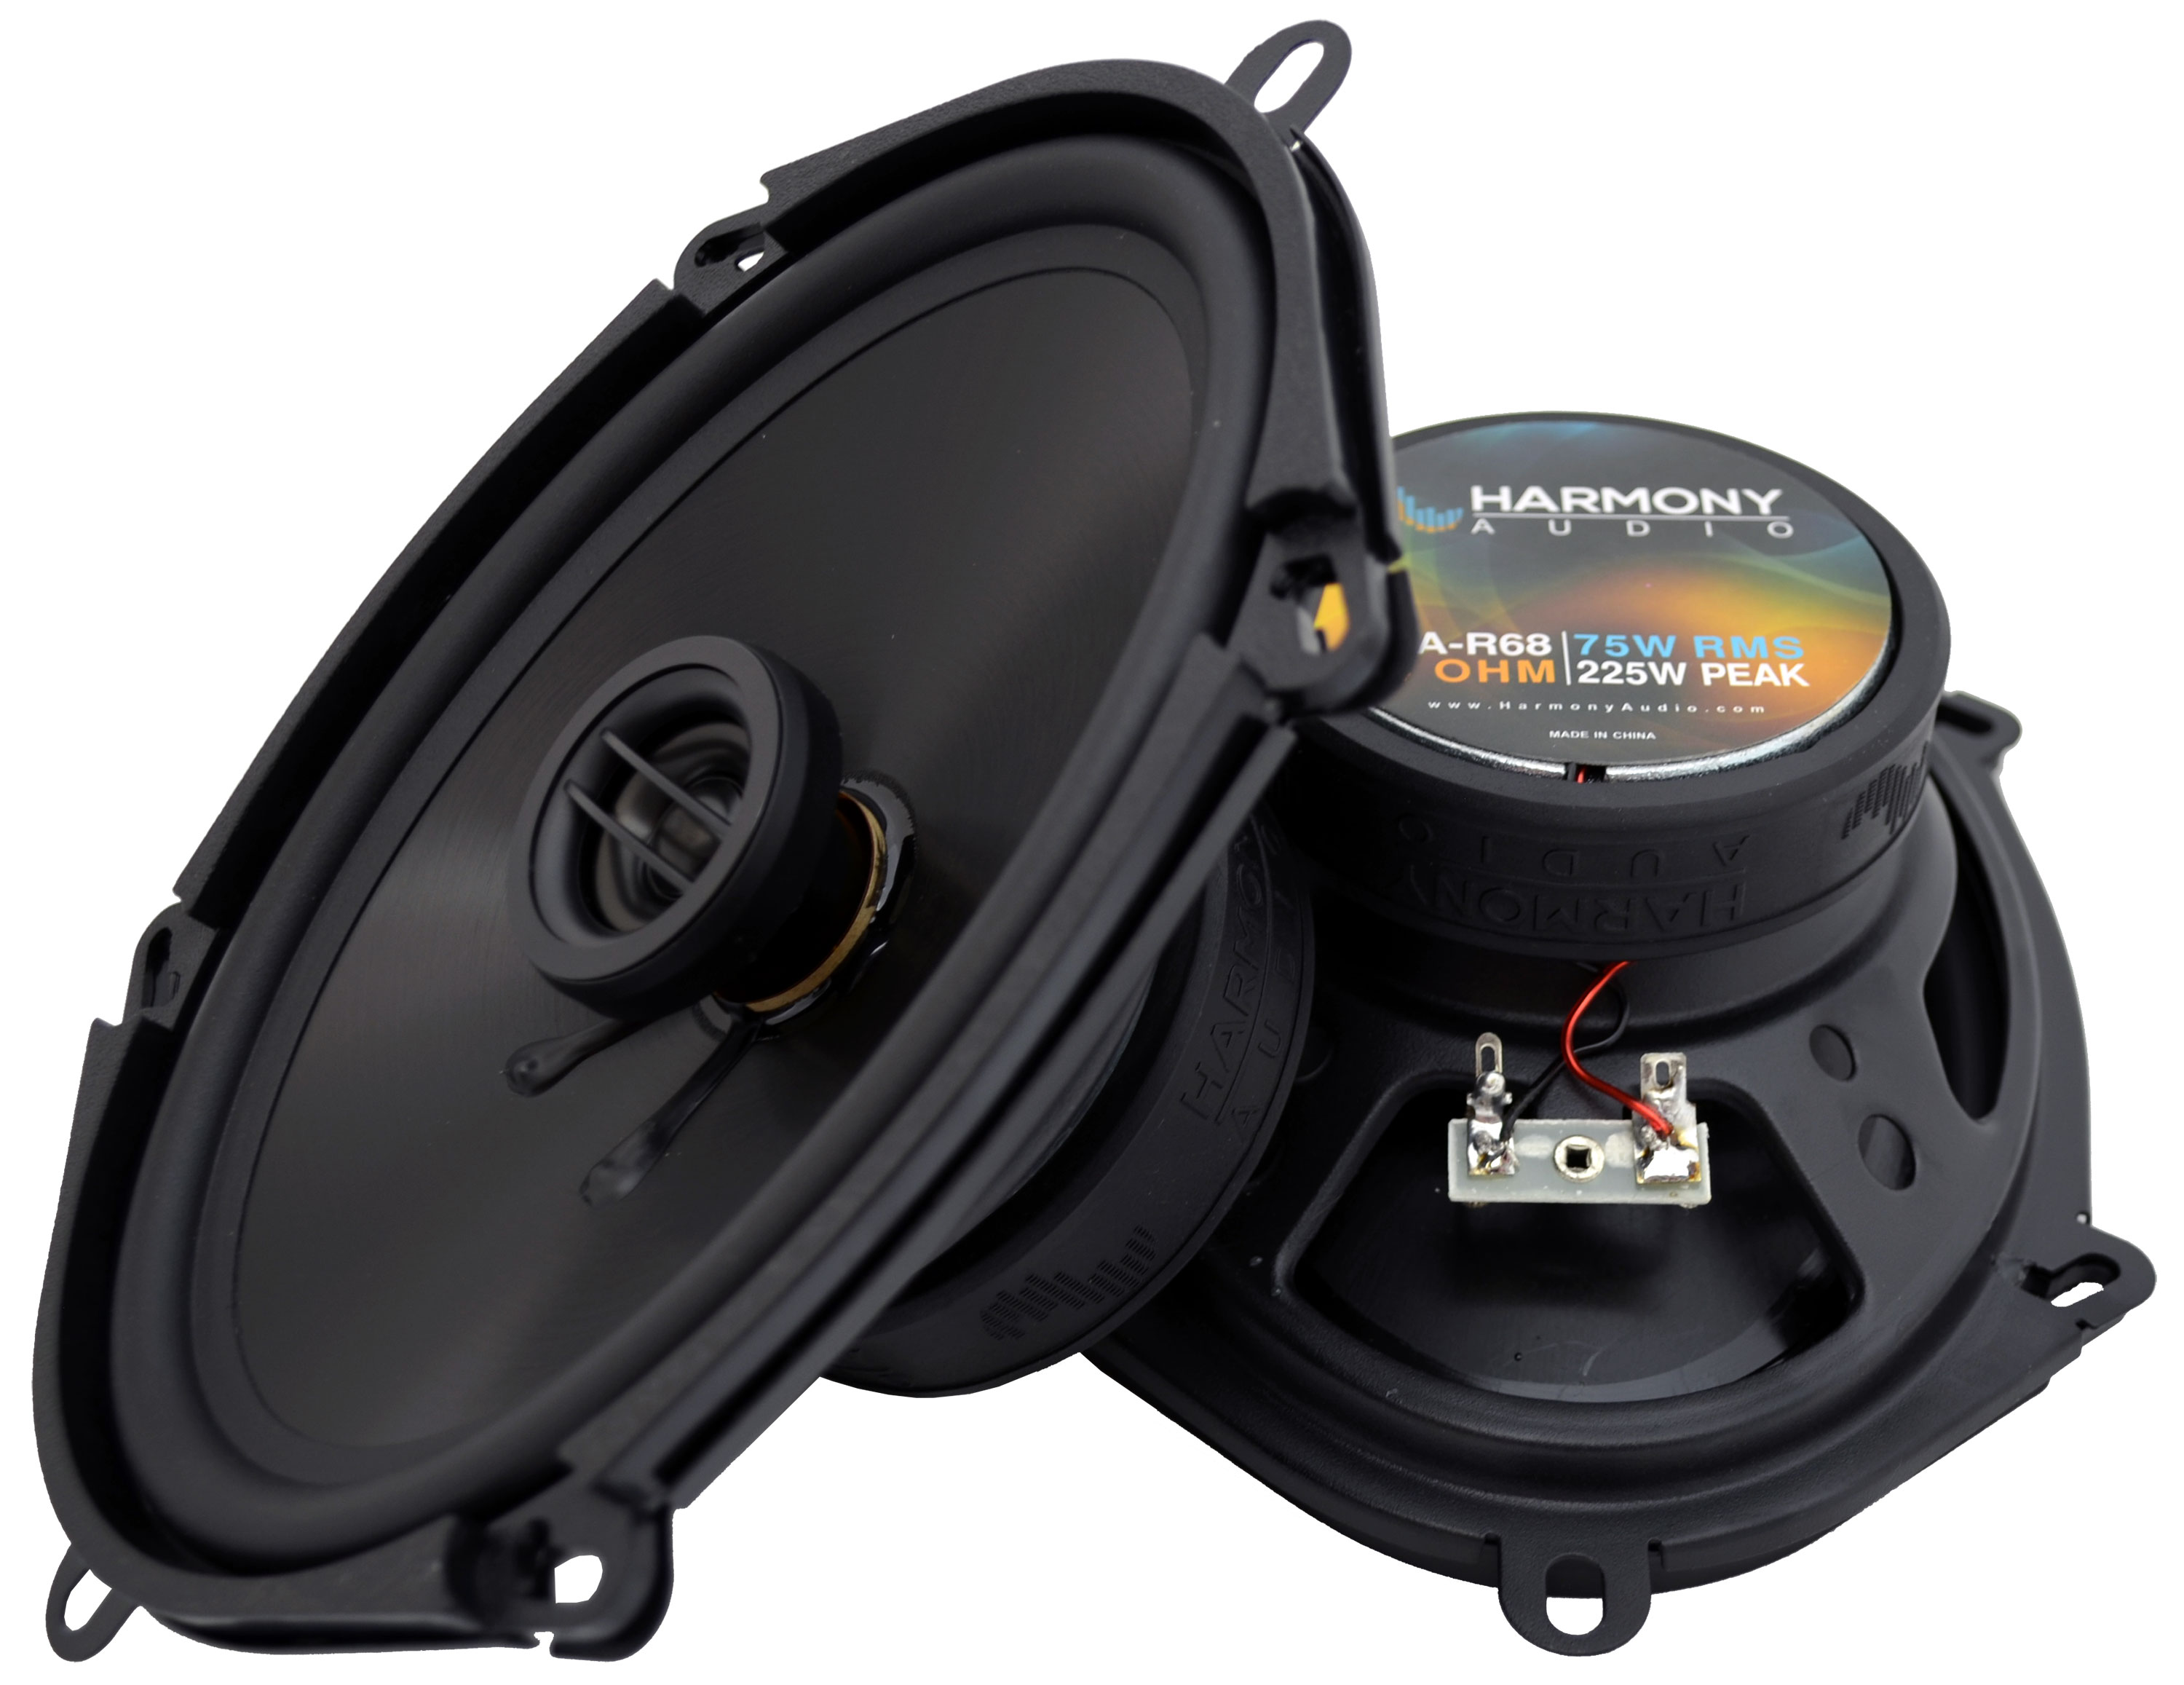 Fits Mazda RX-8 2004-2008 Rear Deck Replacement Speaker Harmony HA-R68 Speakers